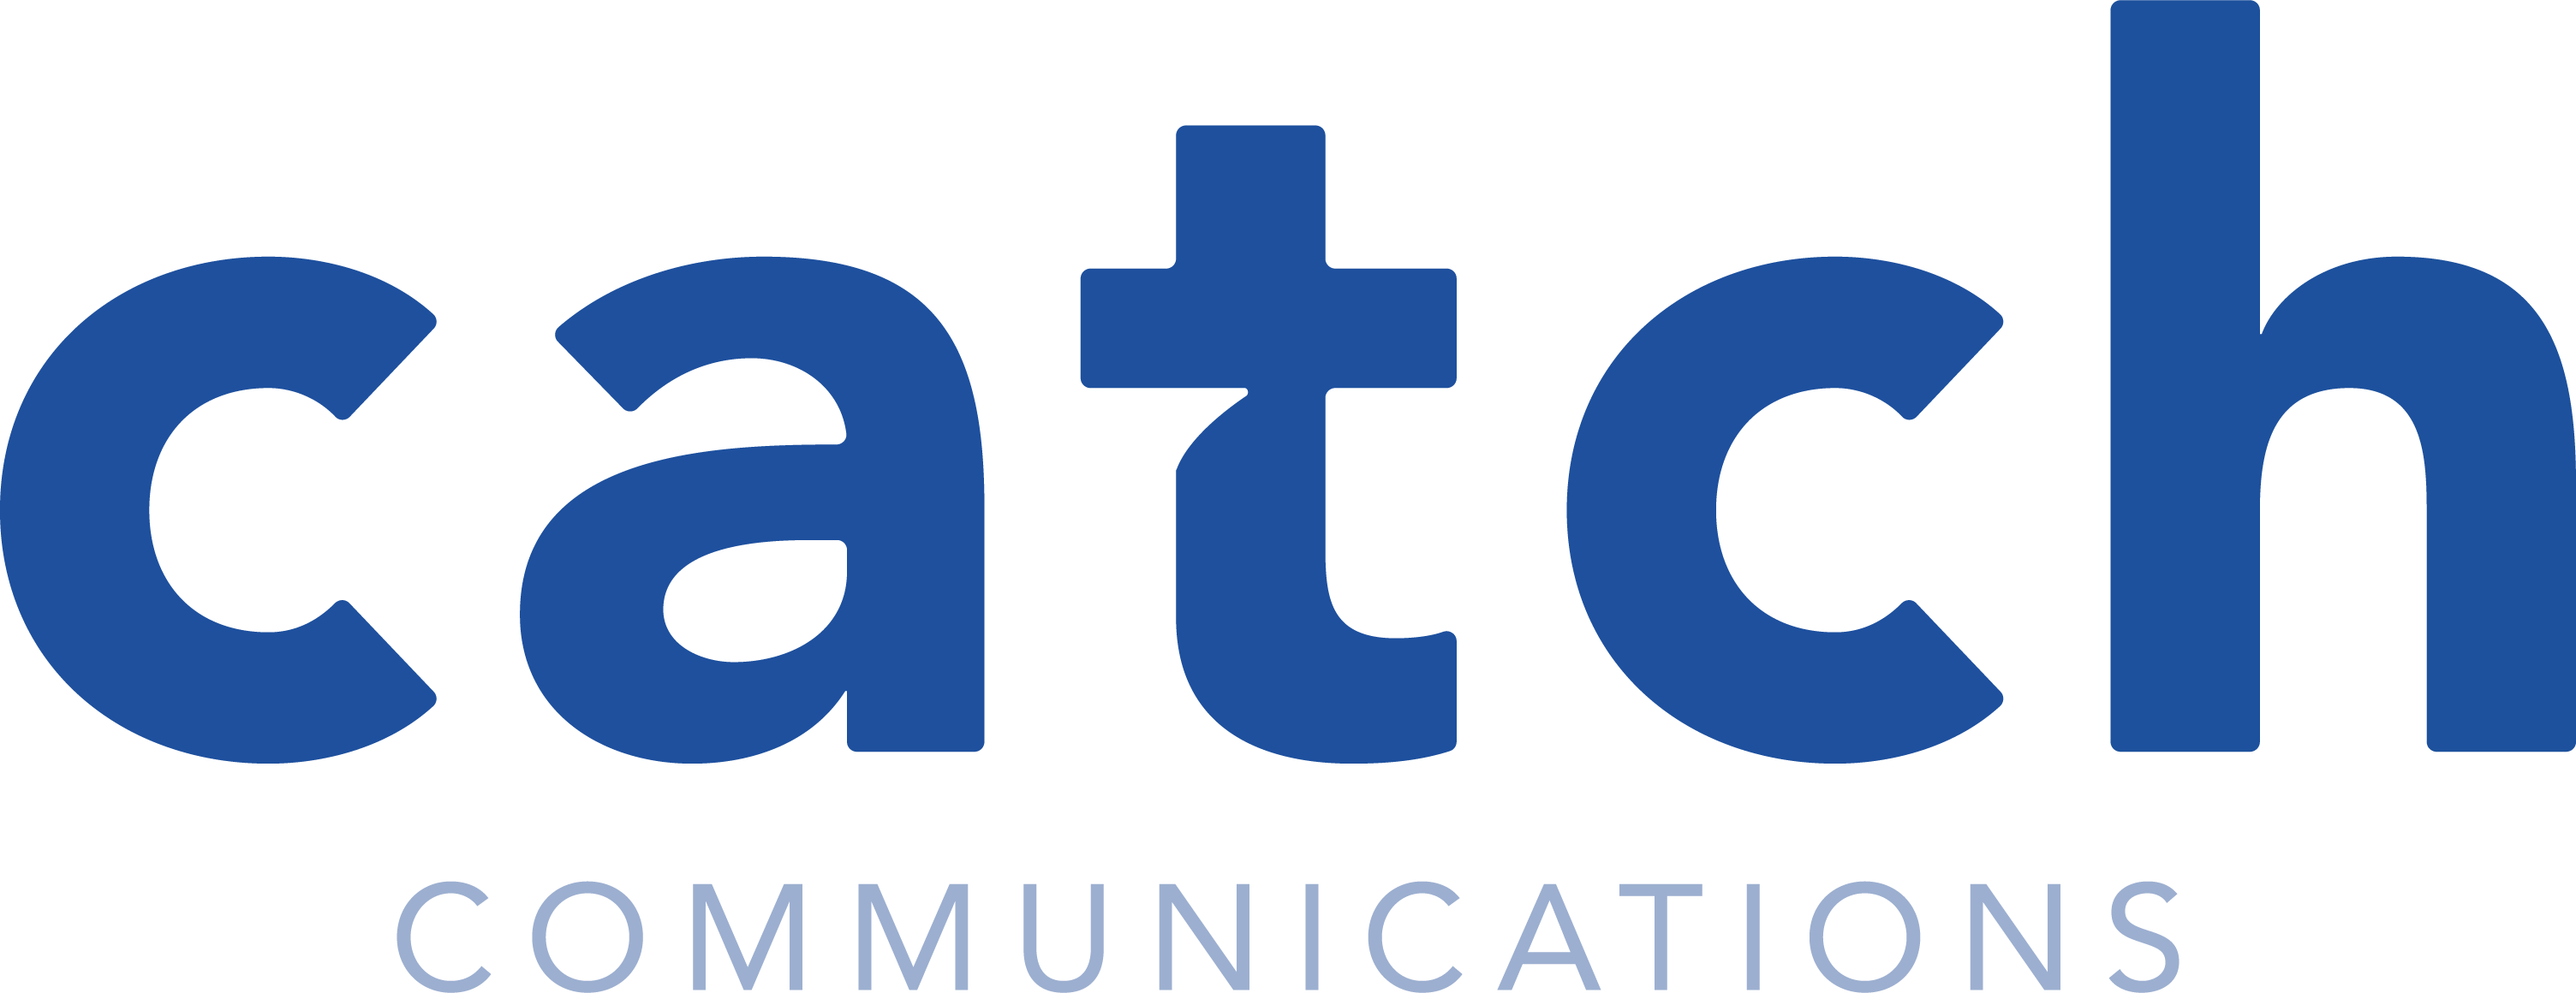 Catch Communications logo